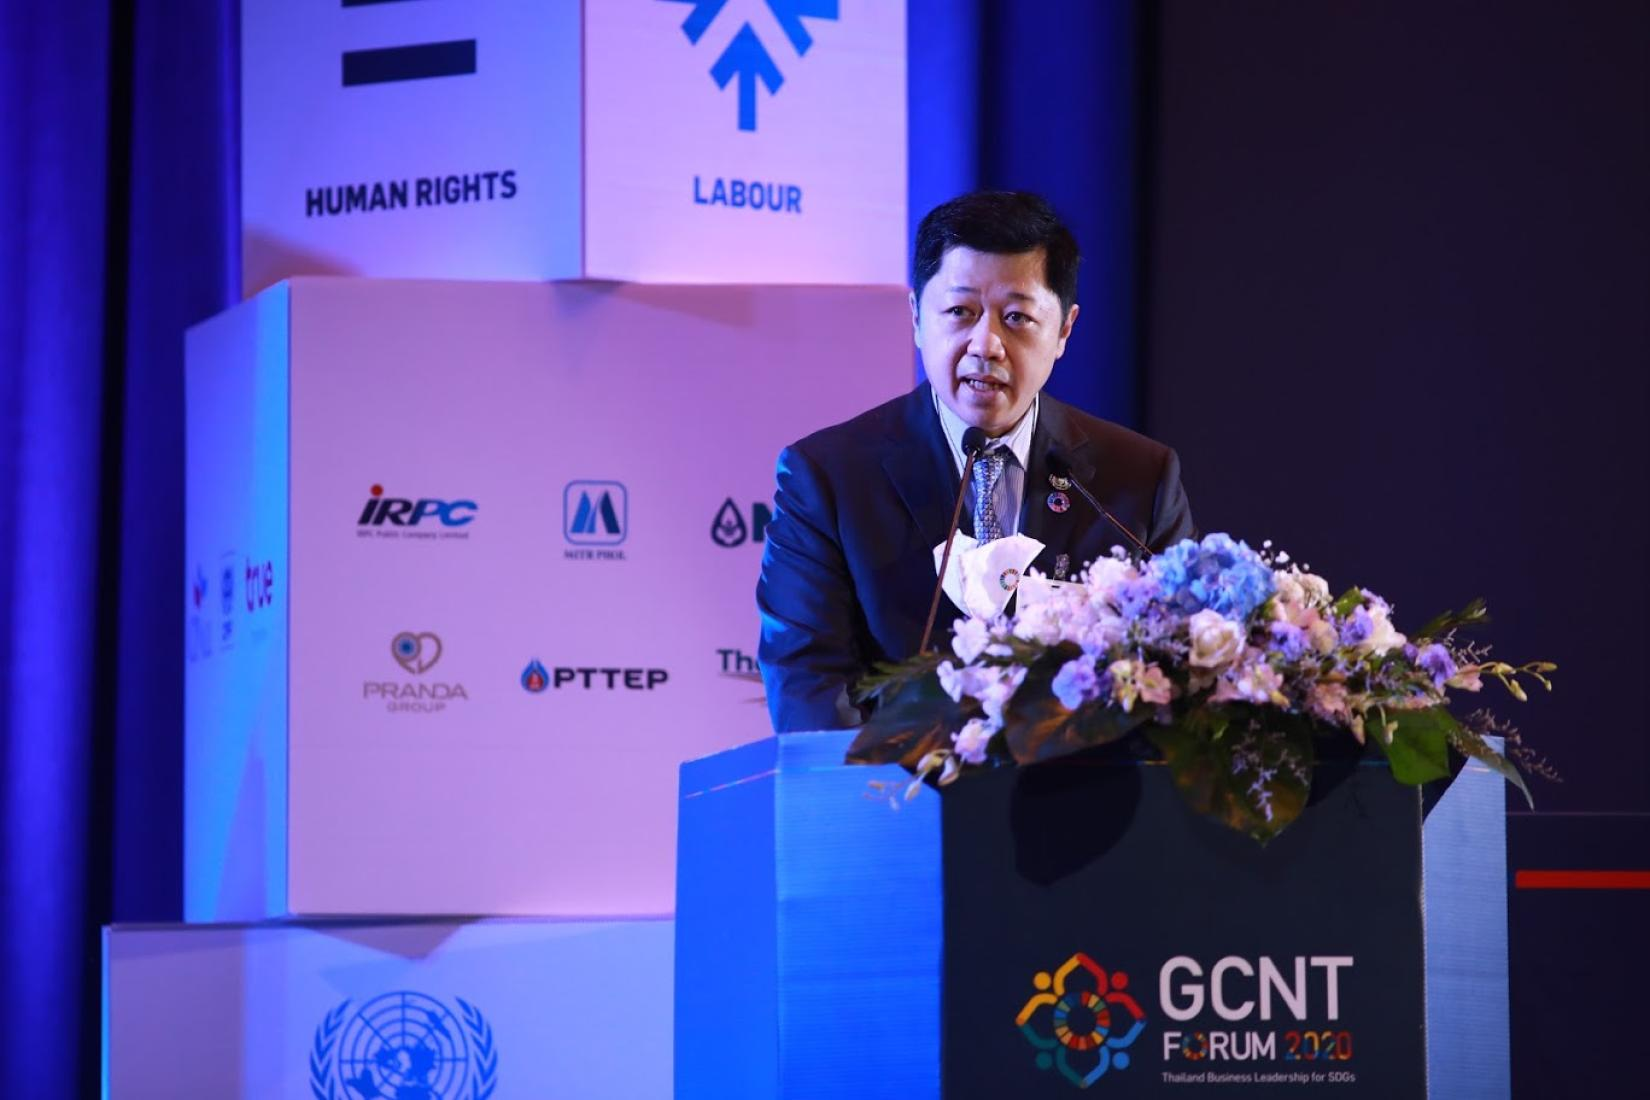 Suphachai Chearavanont, CEO of CP Group, Bangkok, and Chairperson of UN Global Compact Thailand